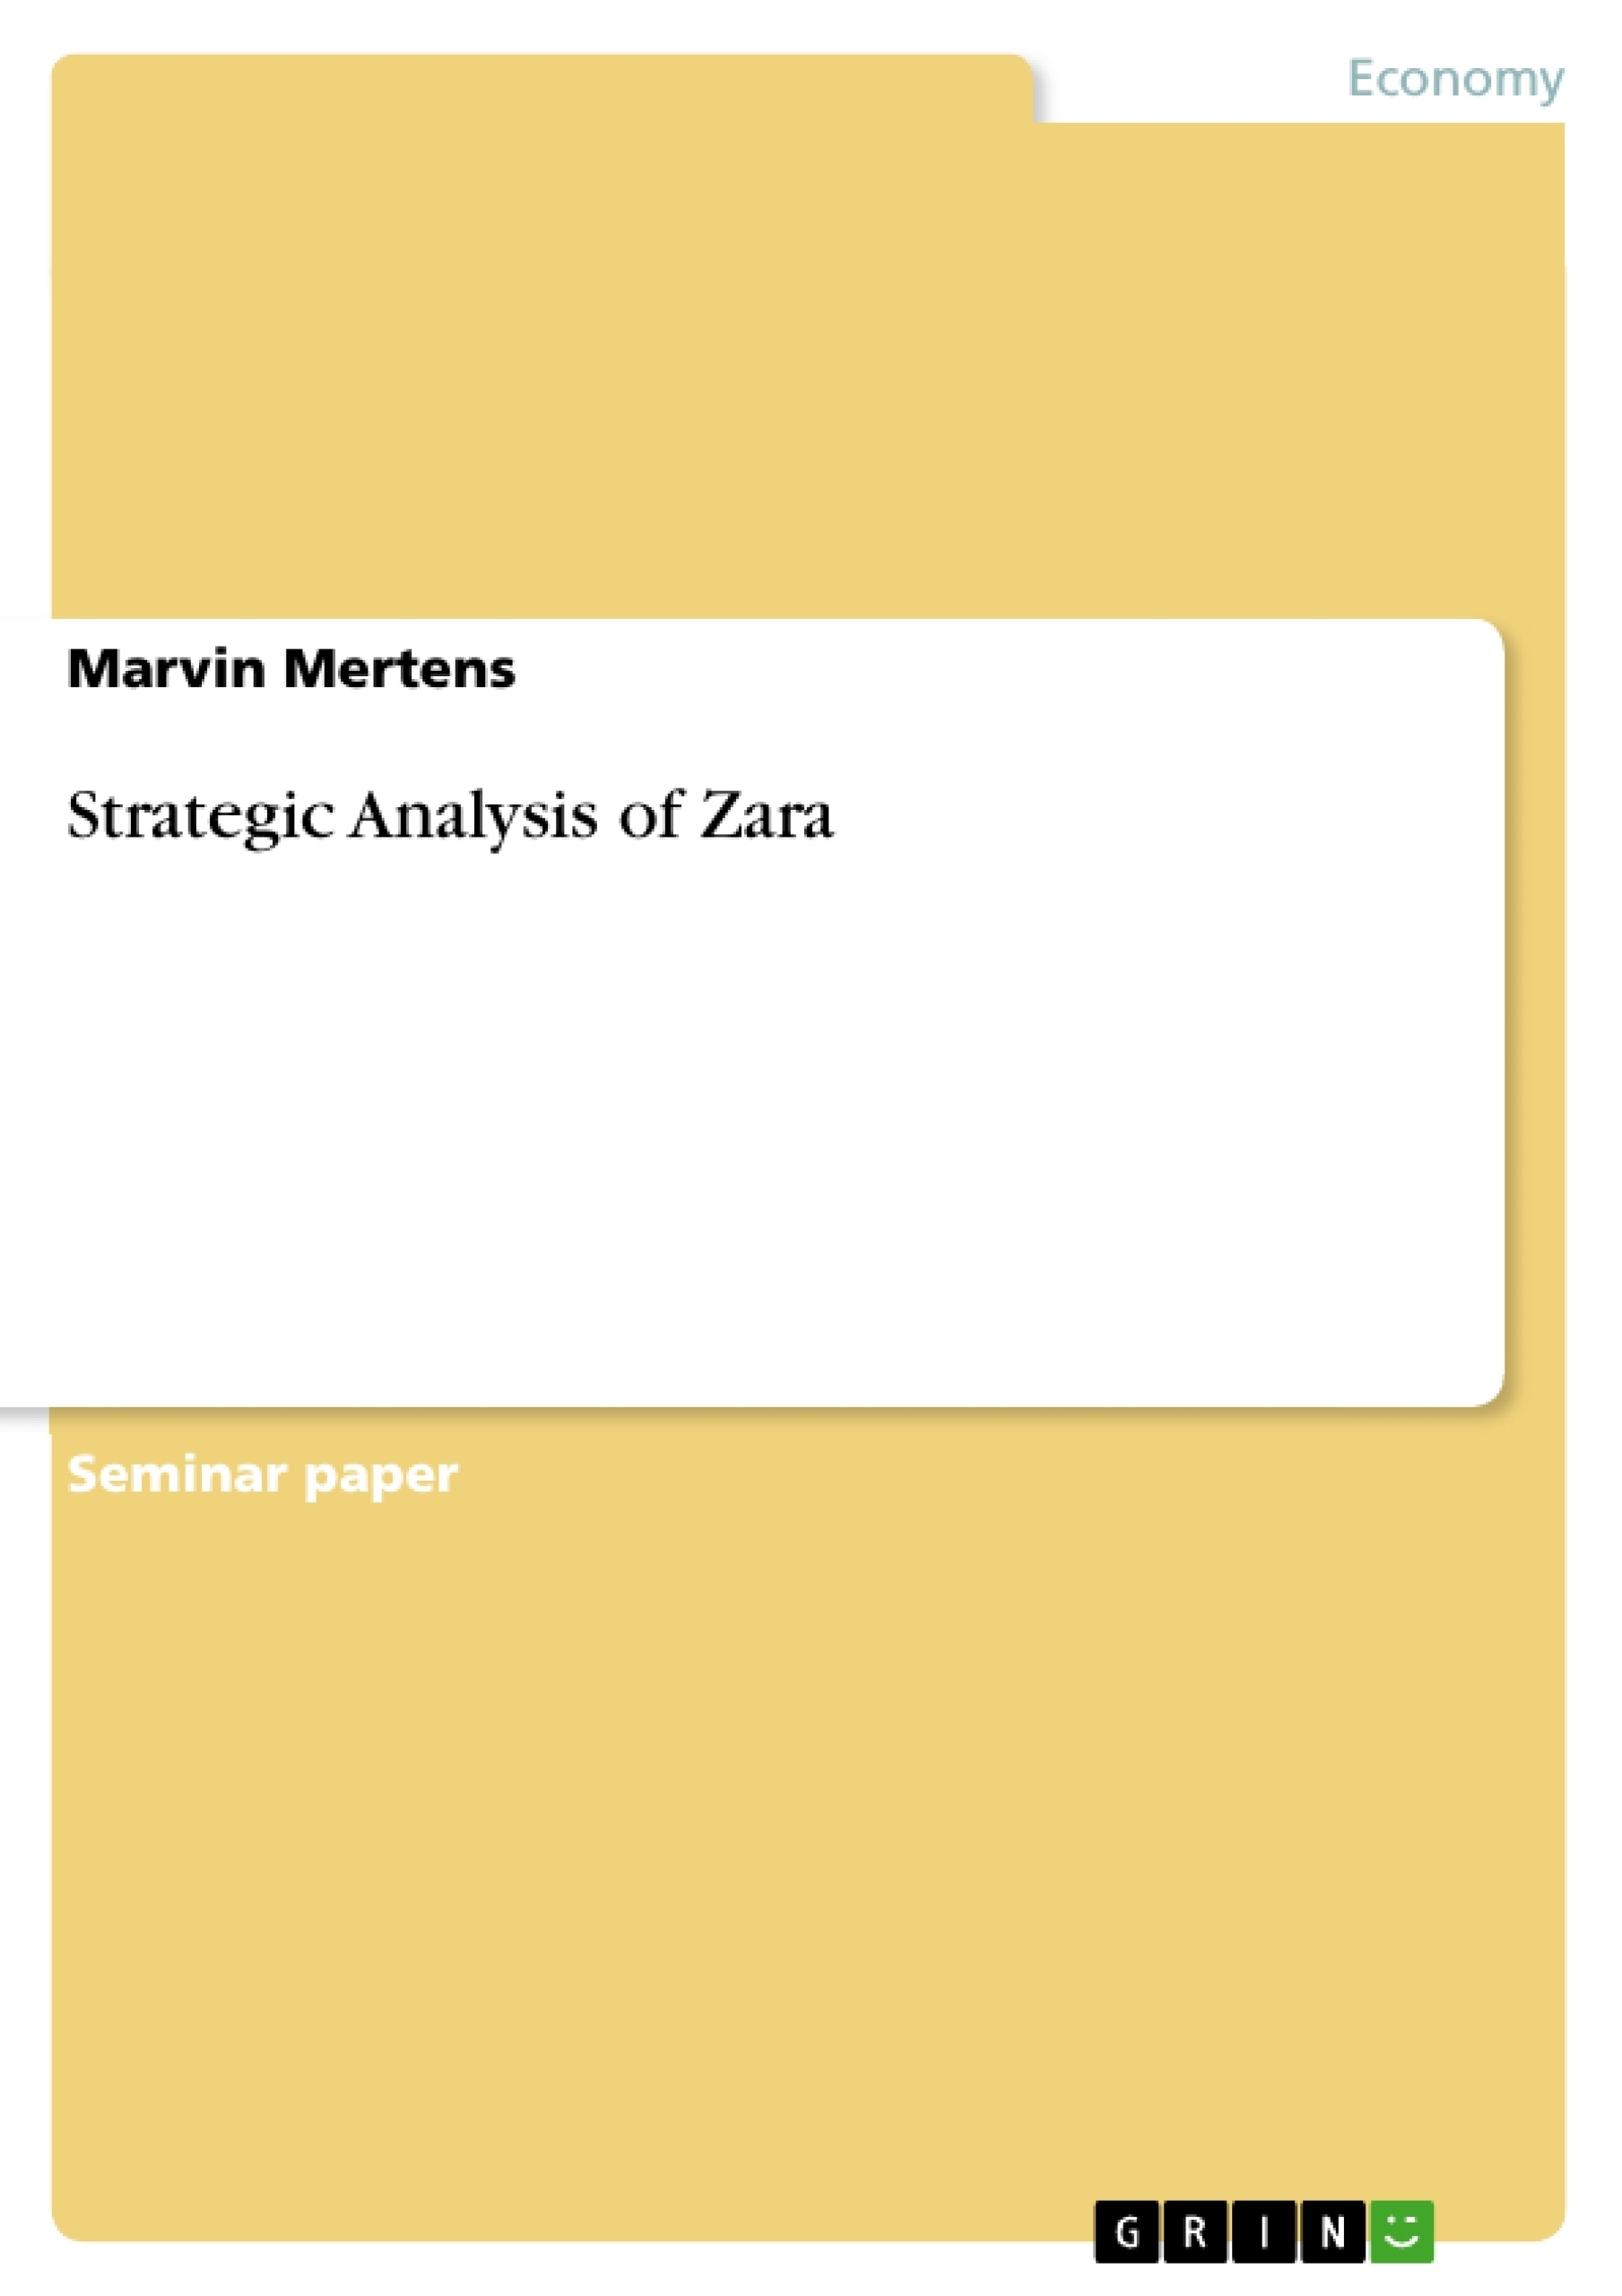 strategic analysis of zara publish your master s thesis strategic analysis of zara publish your master s thesis bachelor s thesis essay or term paper